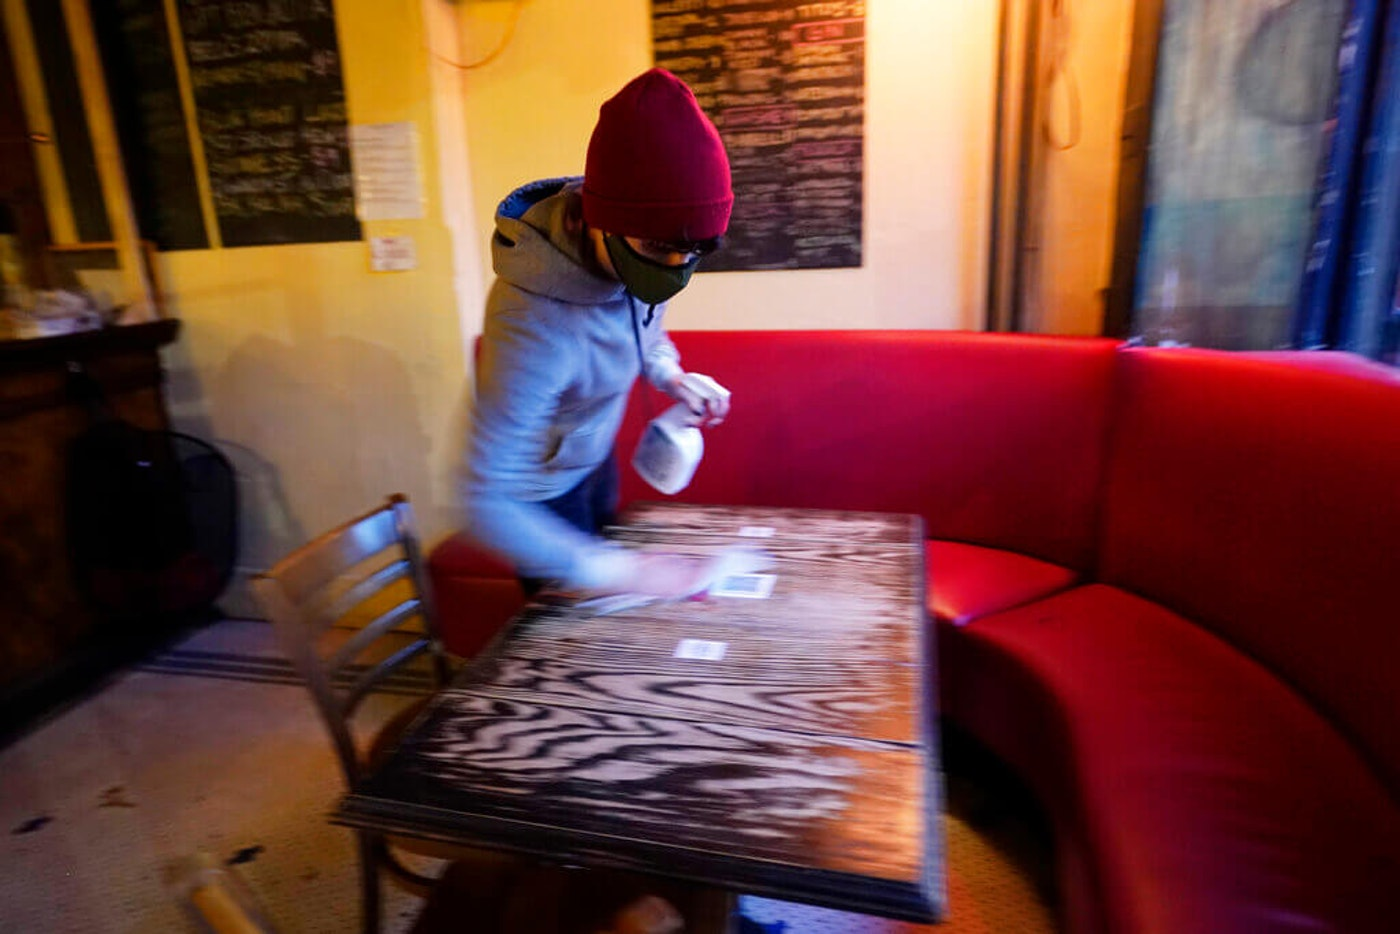 Bartender Alex Wright sanitizes a table before opening Barbès, a popular neighborhood music venue and bar converted to a bottle shop and mostly-outdoor bar during the the coronavirus pandemic in New York in December. (Image via AP Photo/Kathy Willens)